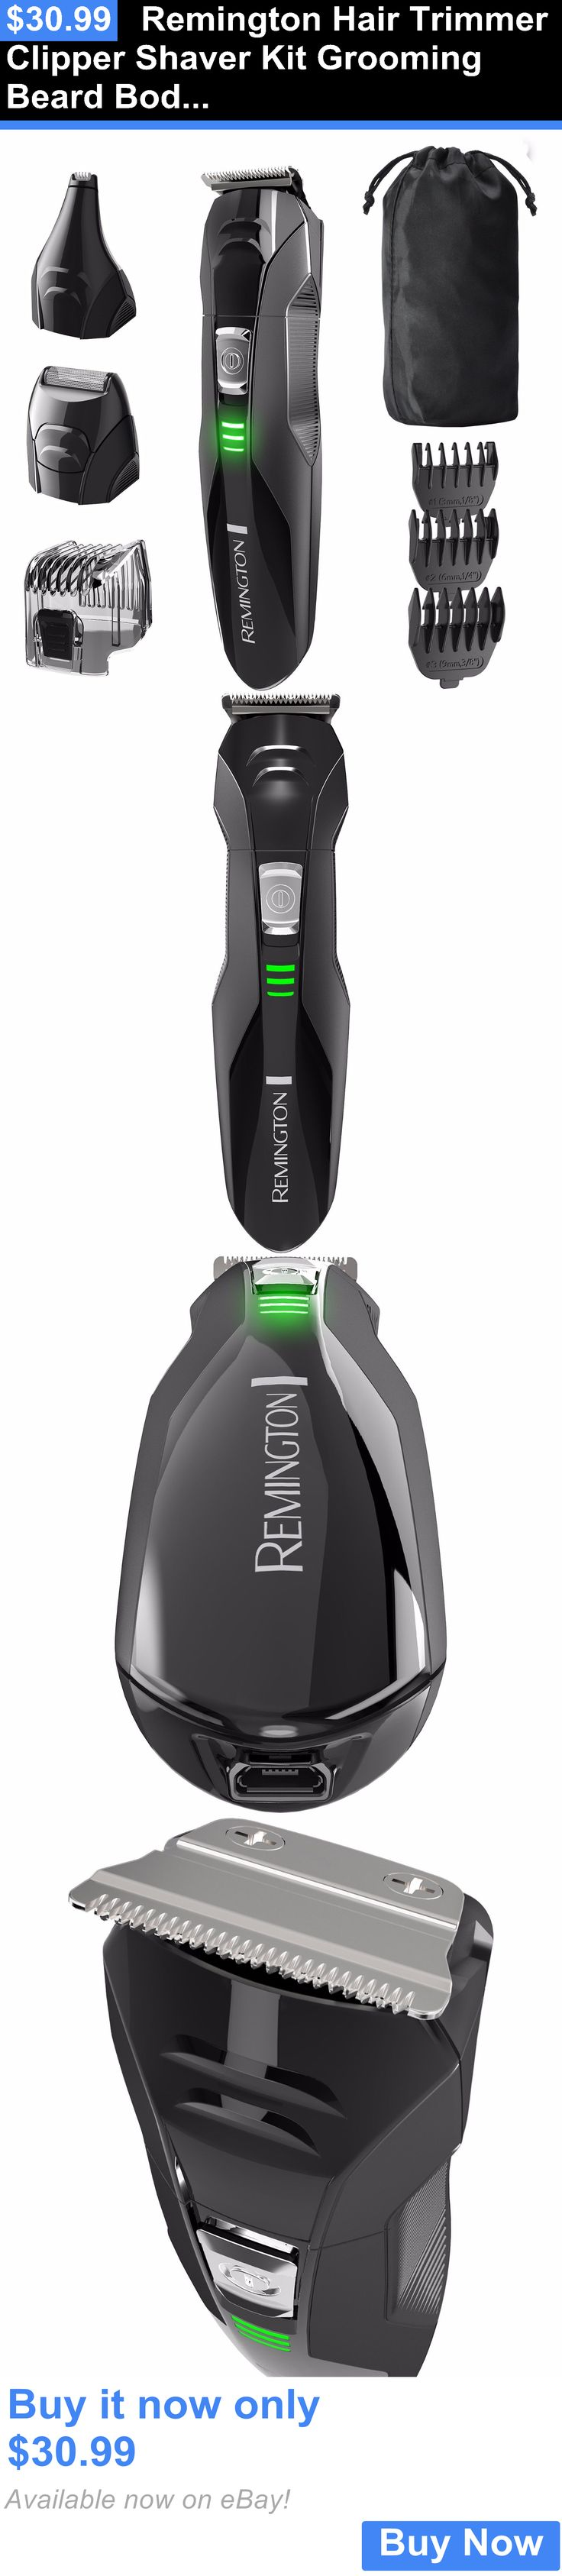 Shaving: Remington Hair Trimmer Clipper Shaver Kit Grooming Beard Body Head Rechargeable BUY IT NOW ONLY: $30.99